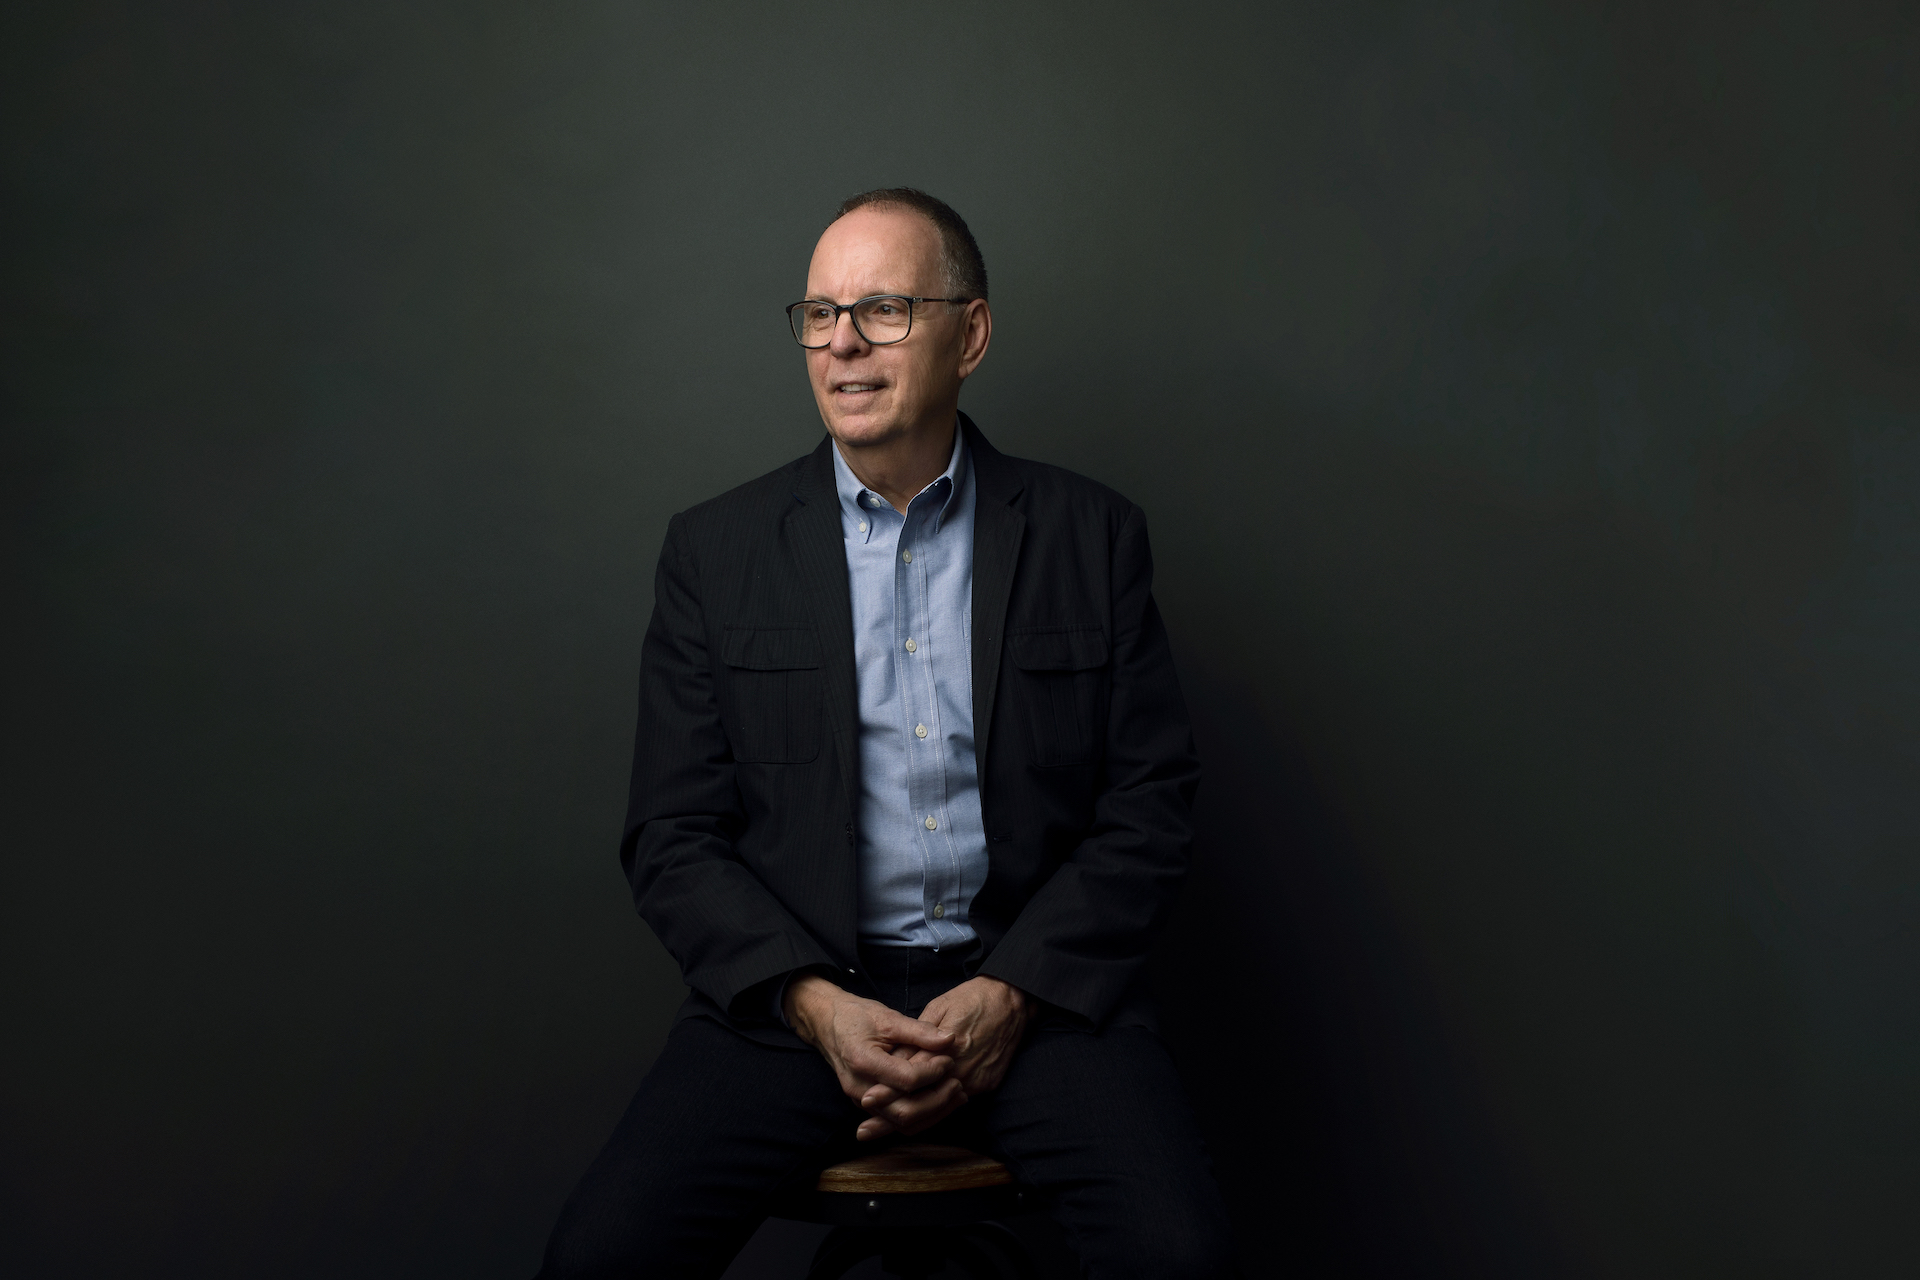 a portrait of Barry. He is wearing a blue shirt and black blazer, sitting and looking into the distance.